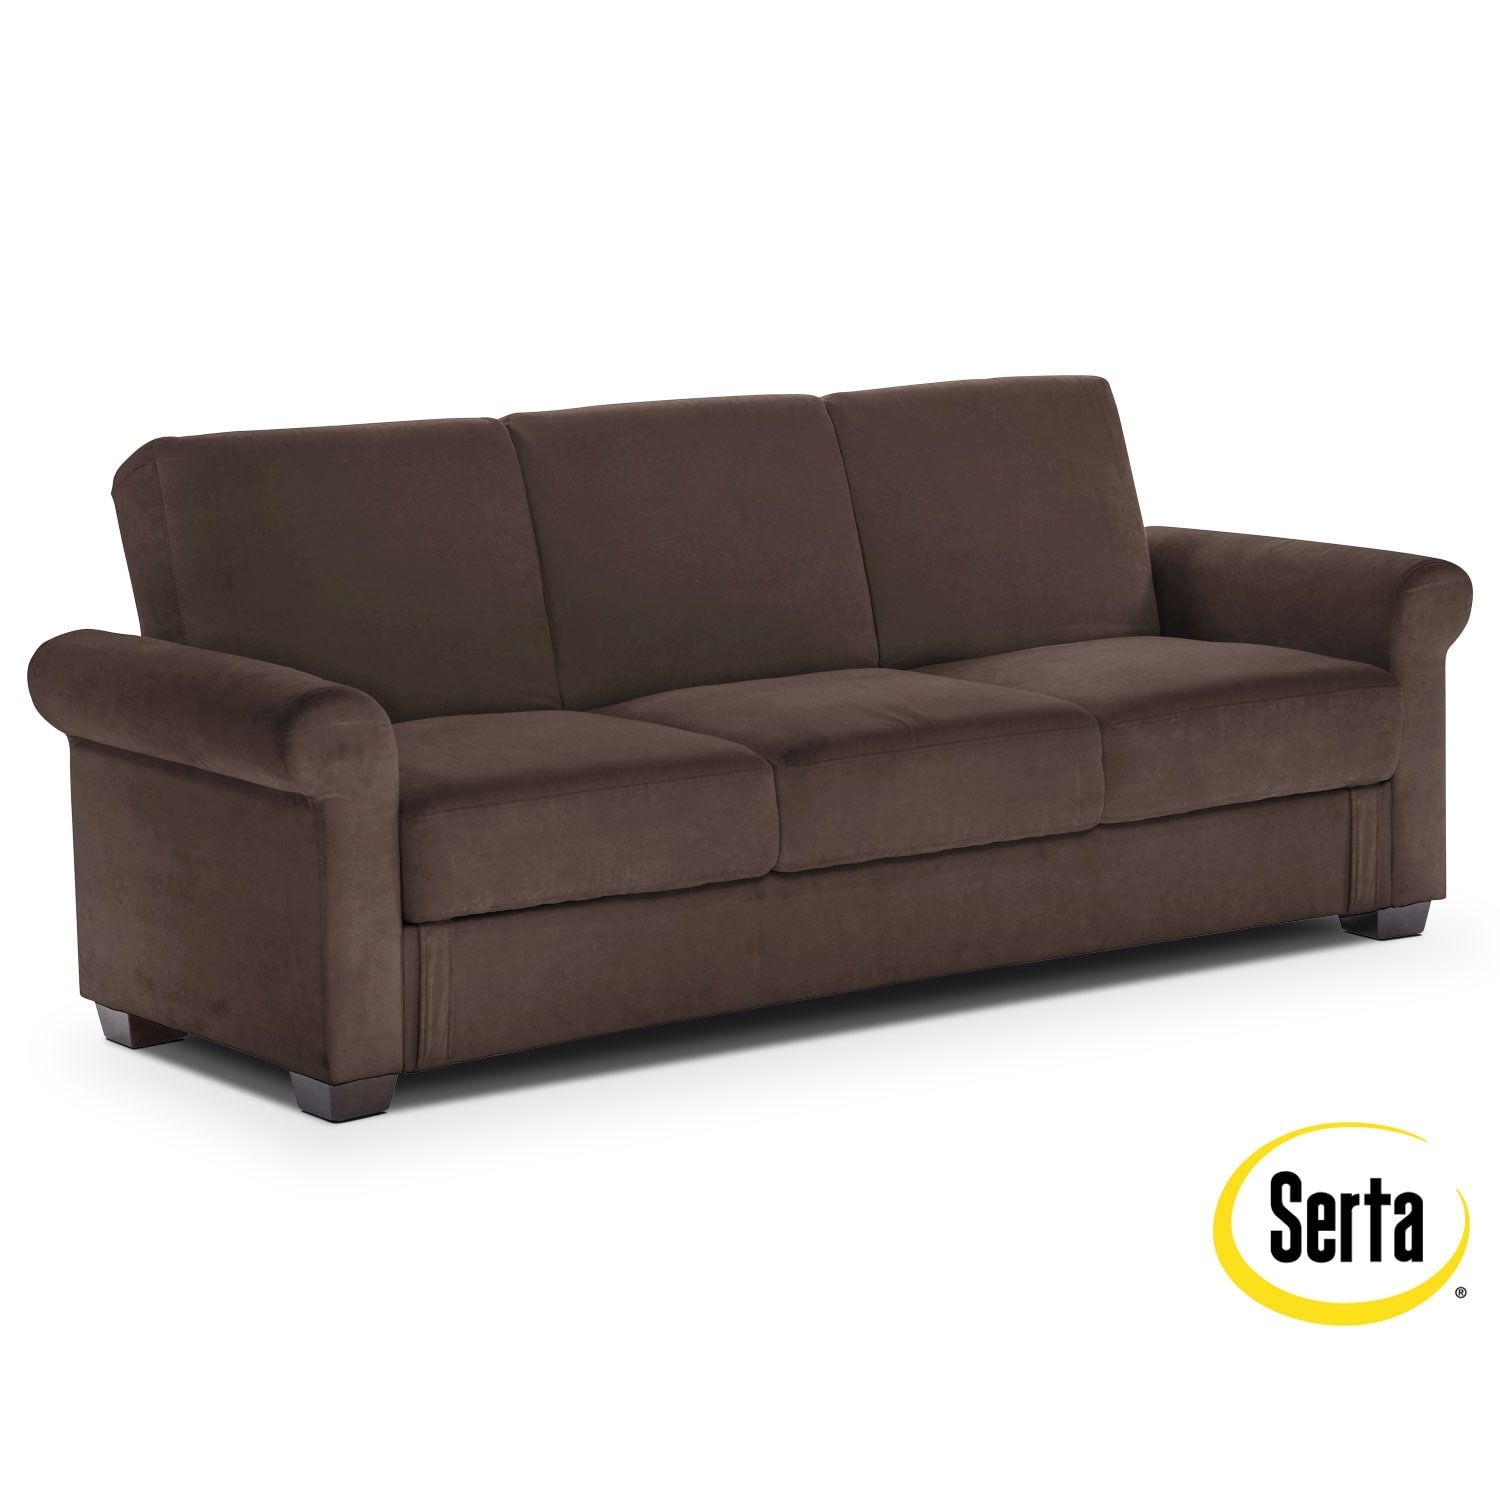 Thomas Futon Sofa Bed with Storage - Java